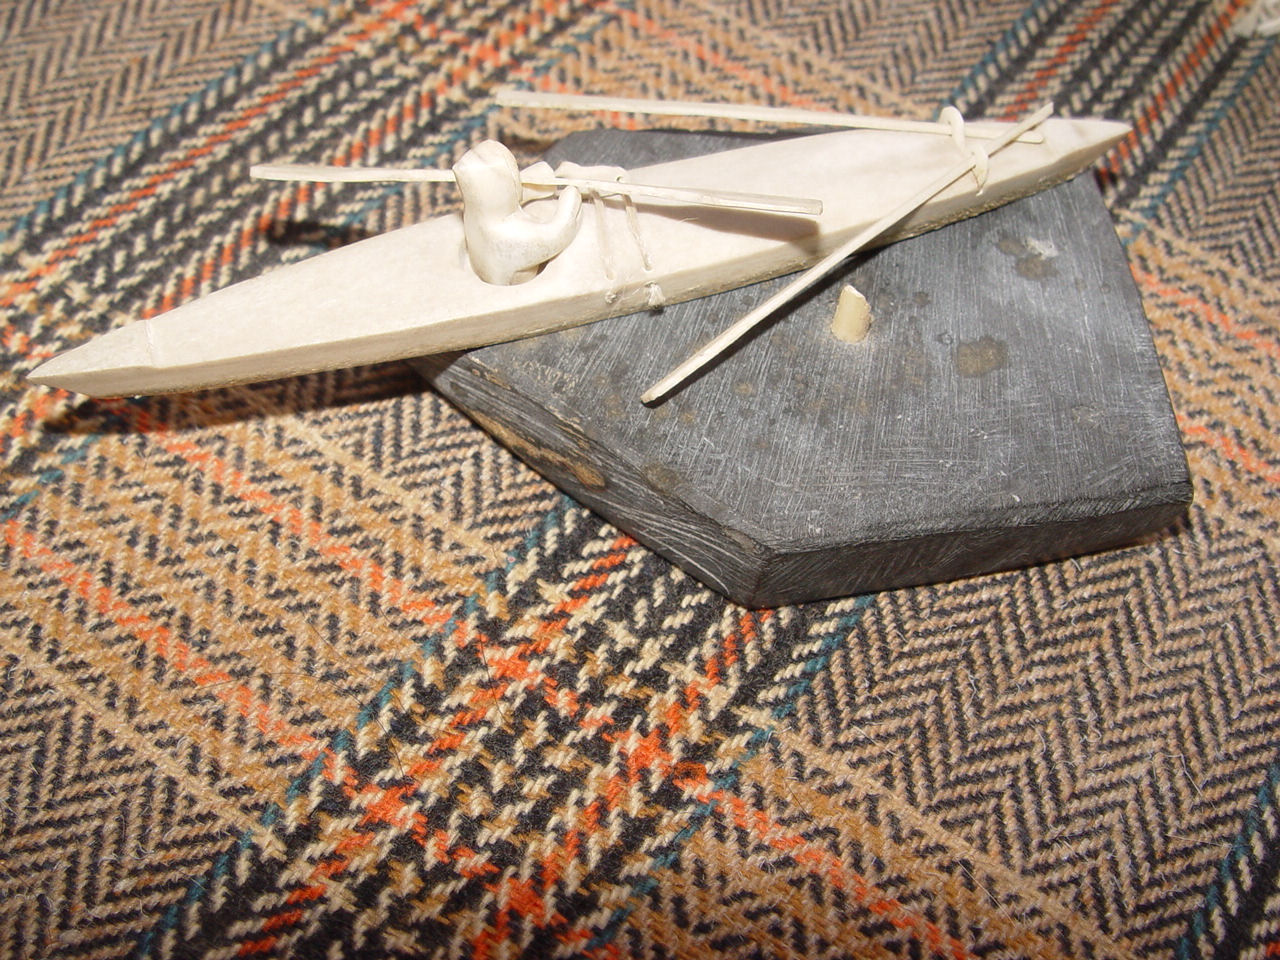 Fine Inuit                                         Alaska Carved Native Eskimo In                                         bone Canoe w/ Spears, Paddles,                                         Stone Base